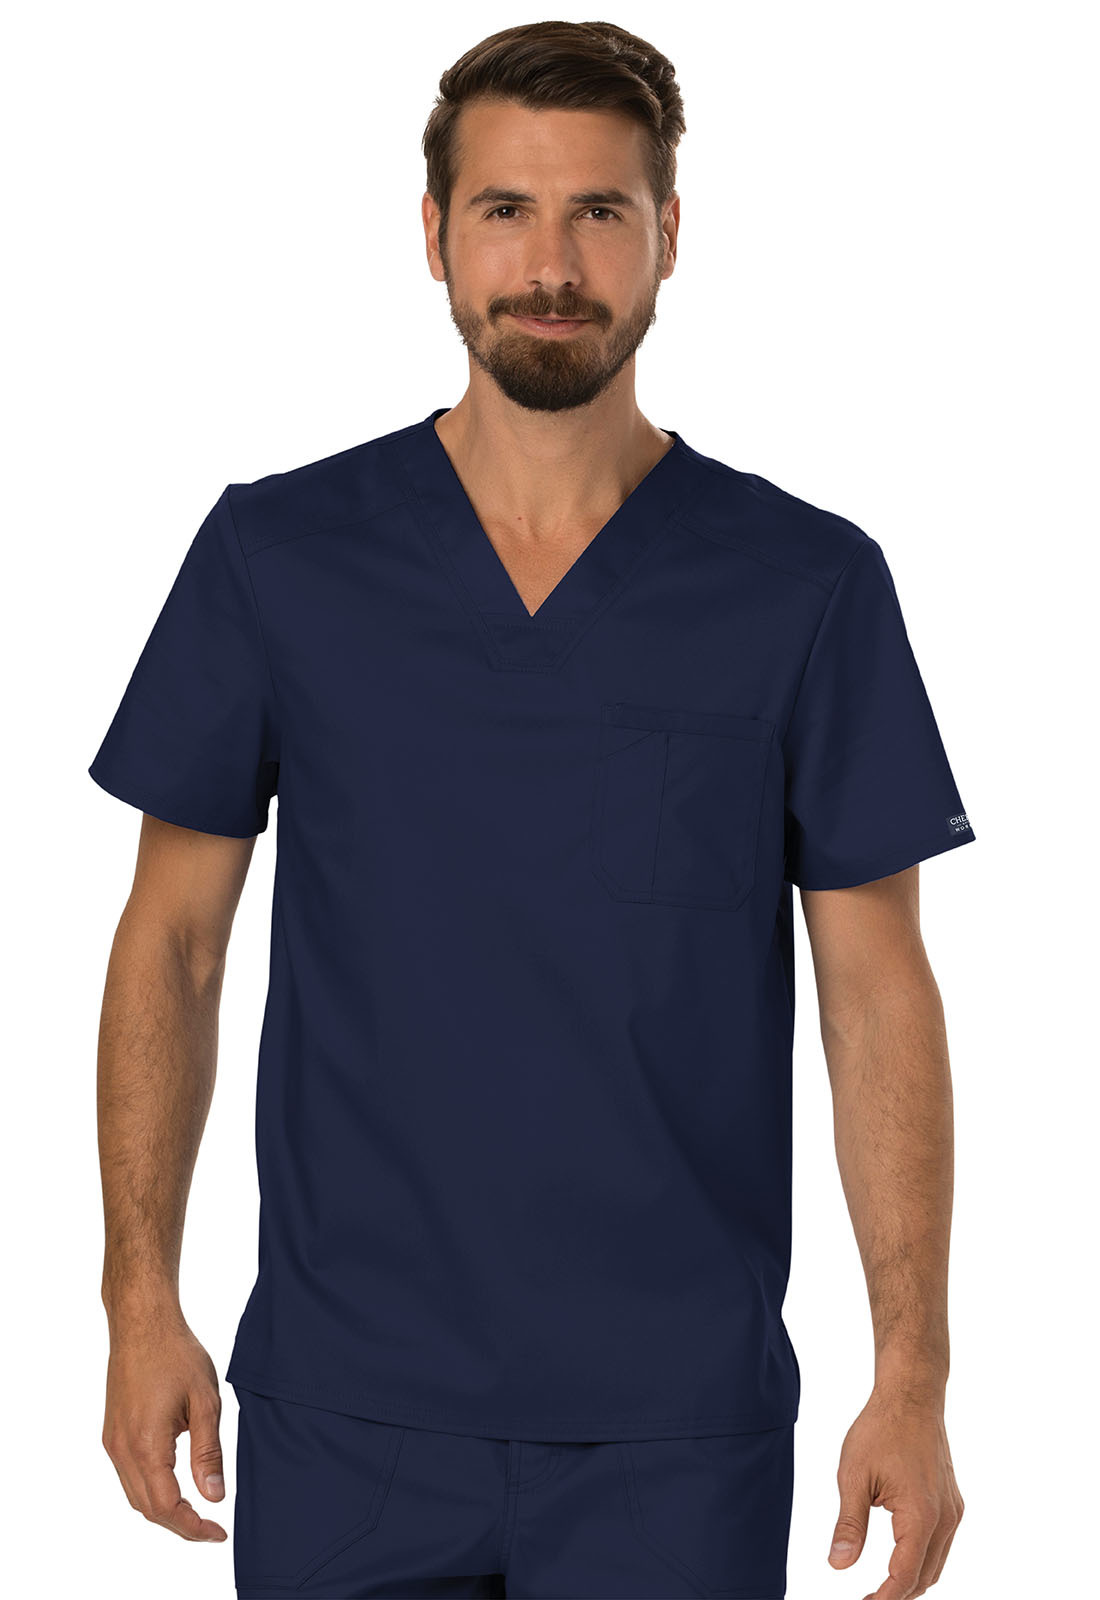 Image For NURSING - SCRUB TOP MEN'S